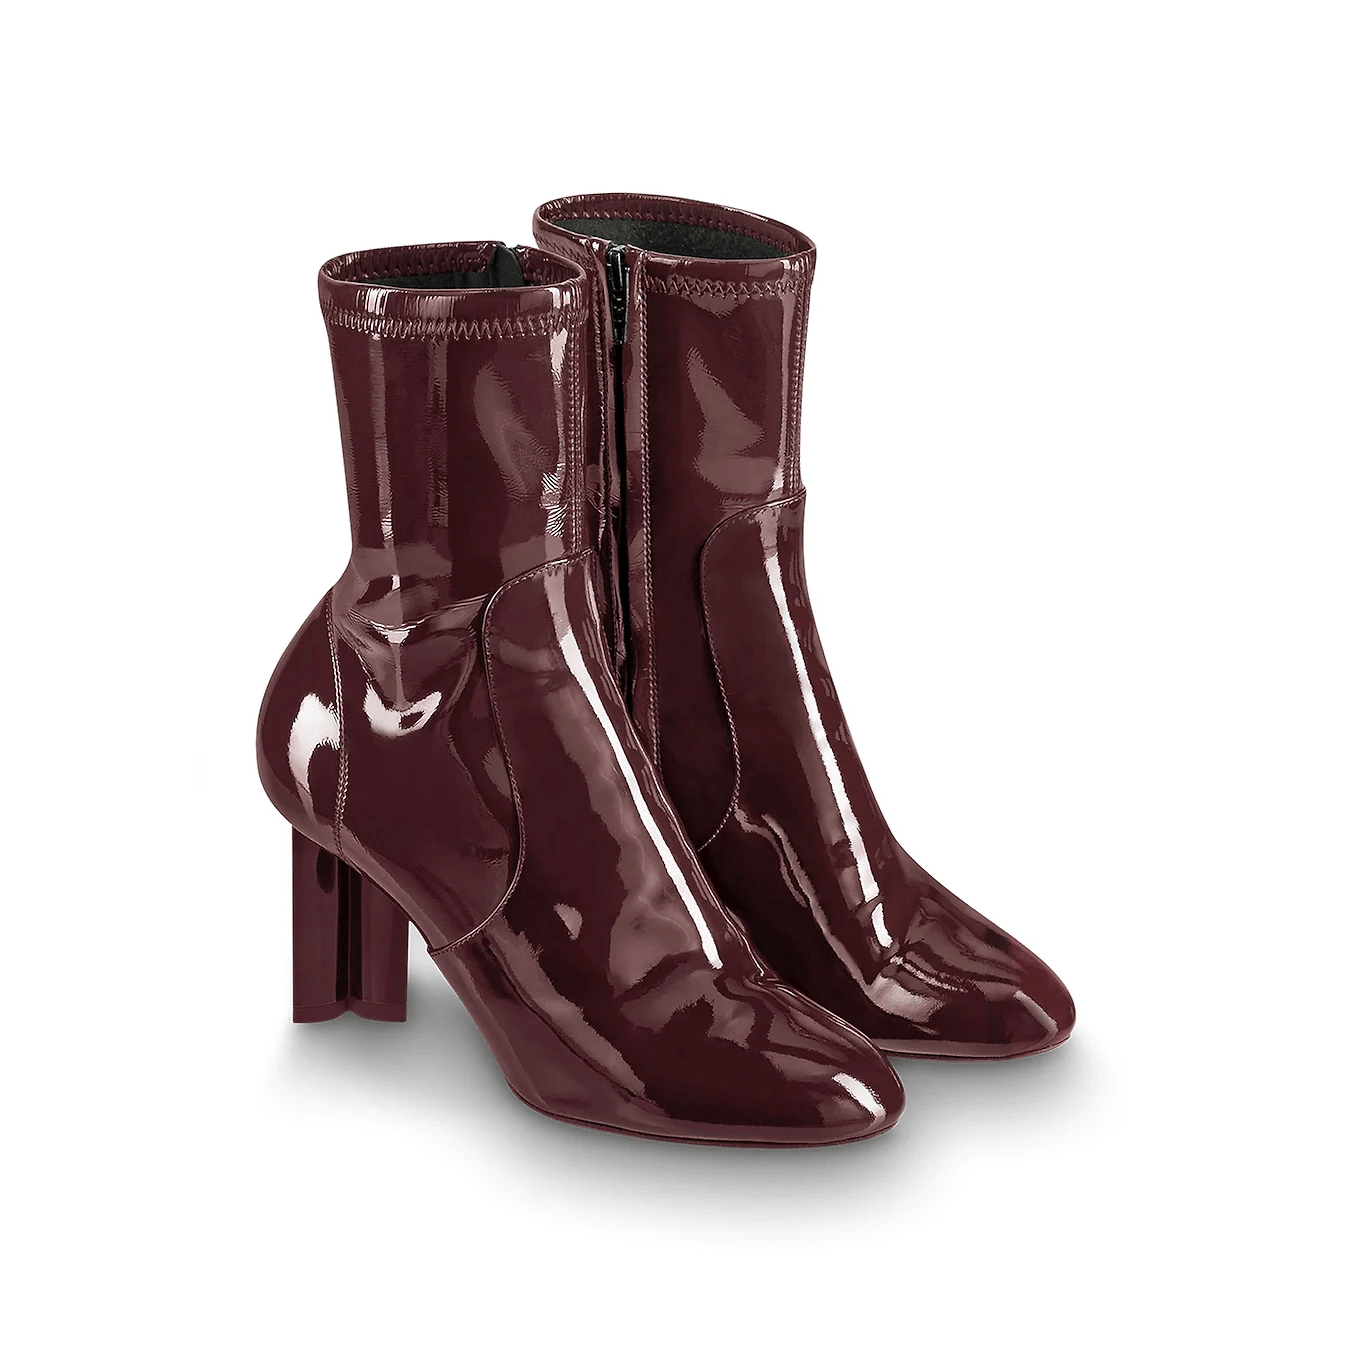 9da7cbc590a Introducing The Louis Vuitton Silhouette Ankle Boot - Brands Blogger